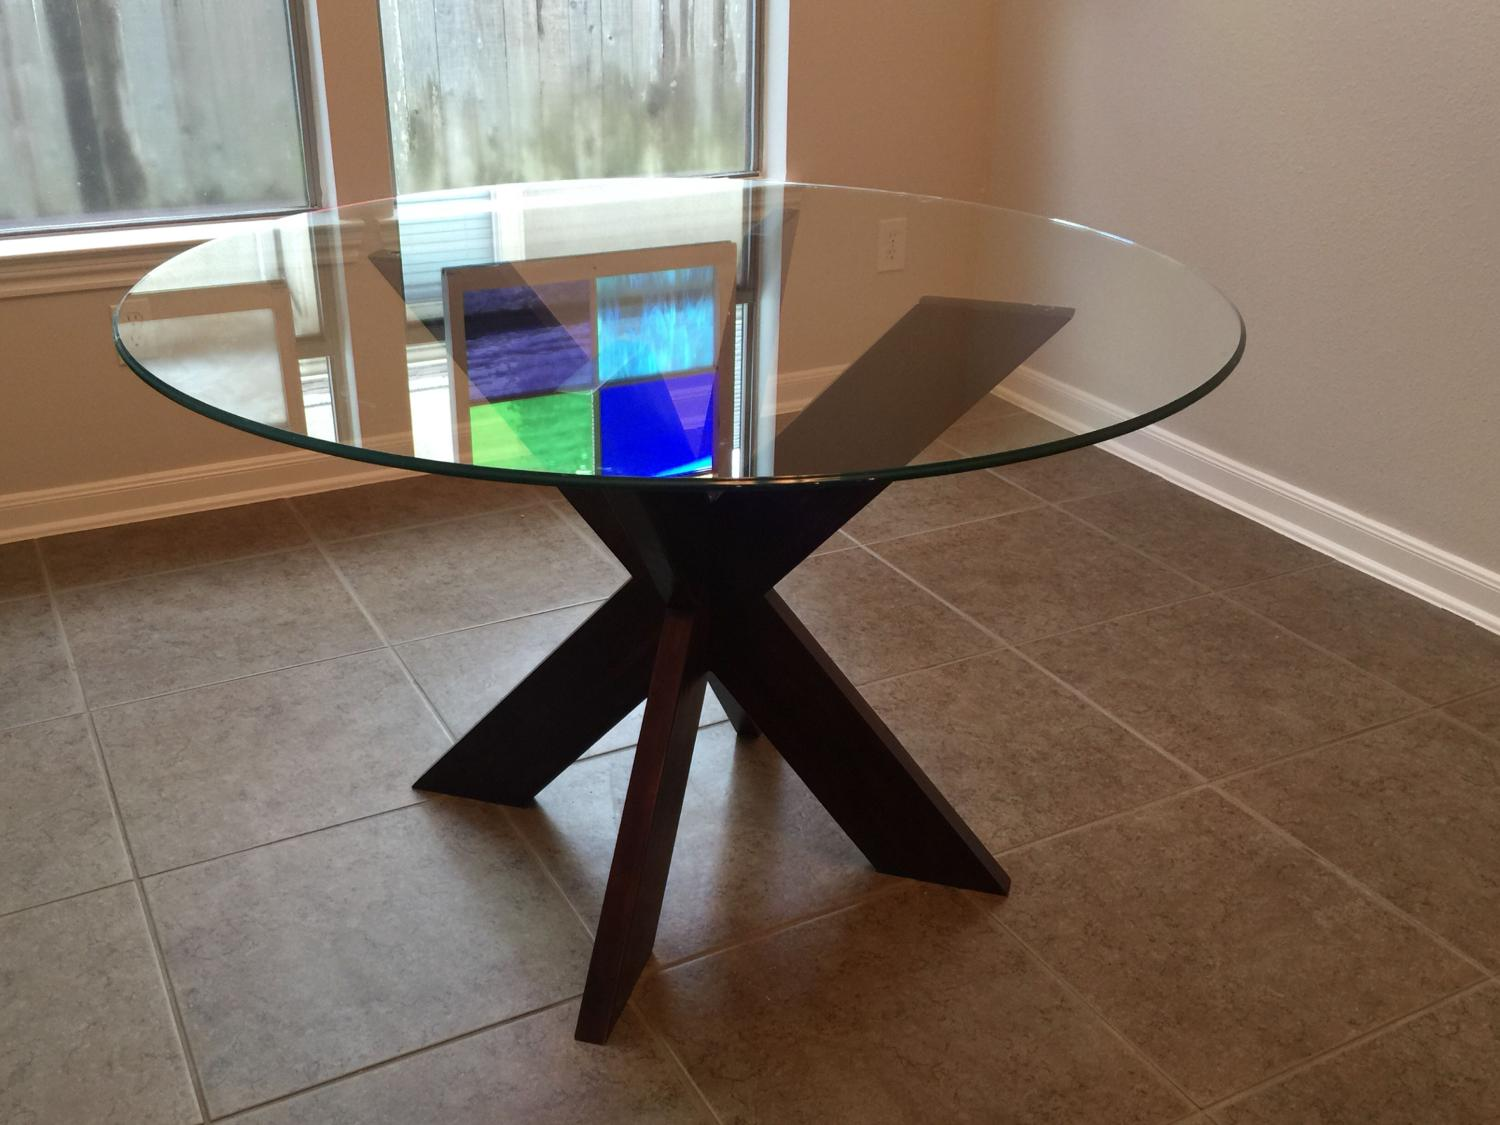 Find More Pier 1 Espresso Simon X Dining Table For Sale At Up To 90 Off